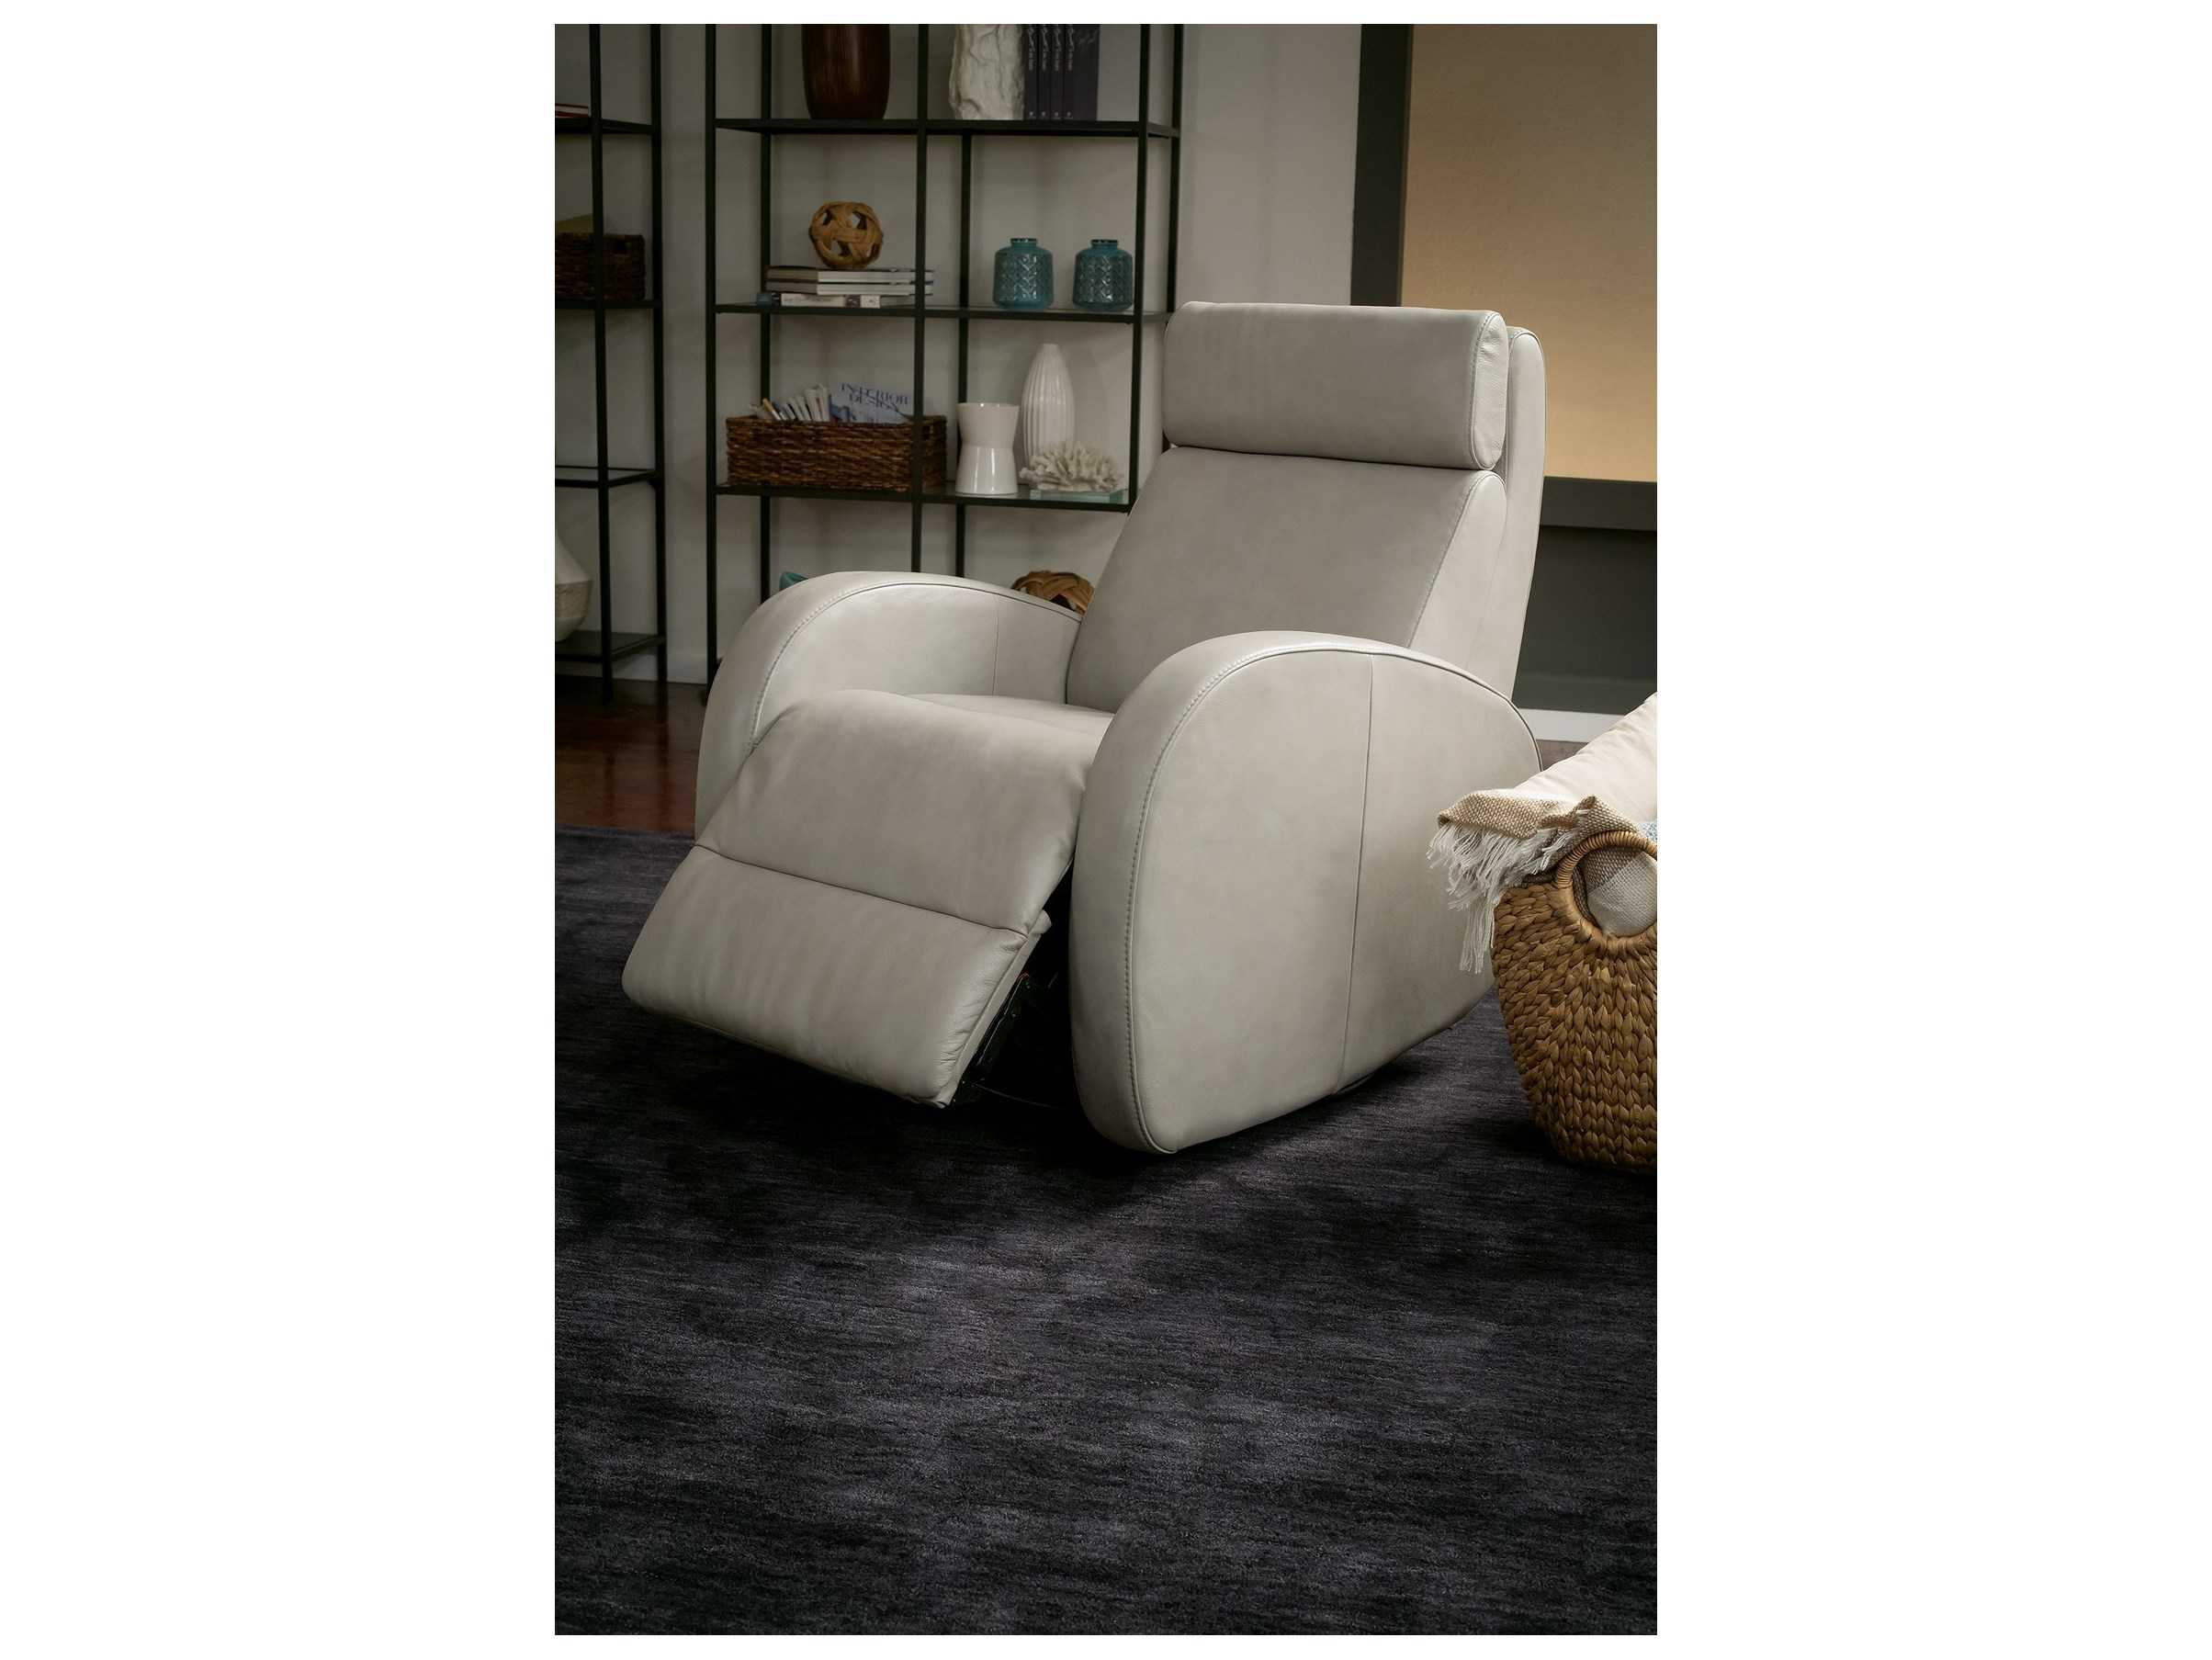 Palliser Jasper Ii Swivel Glider Powered Recliner Chair